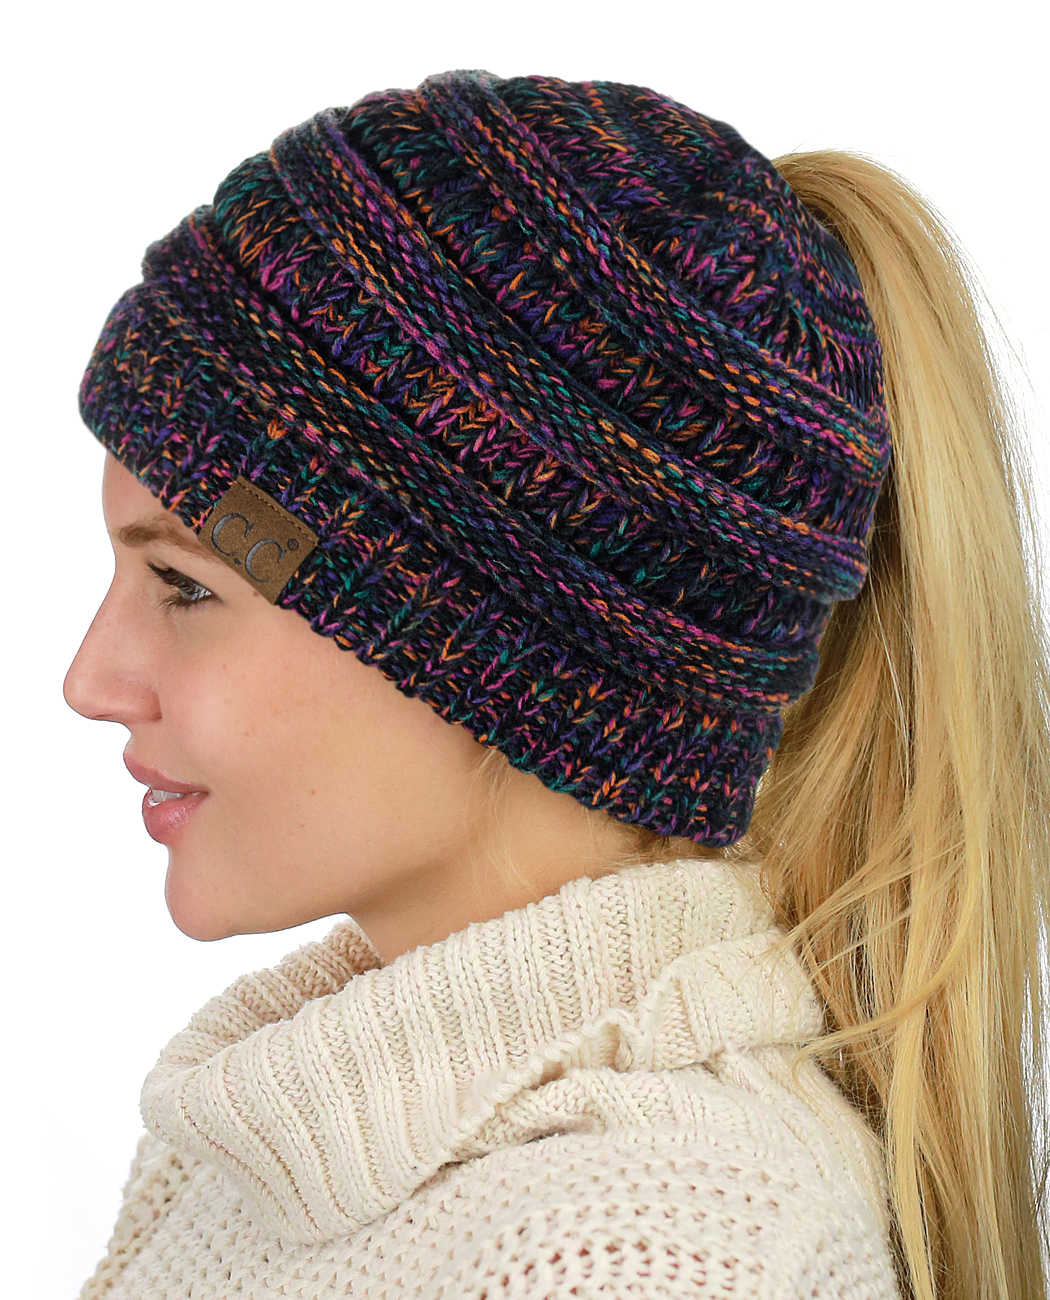 C.C BeanieTail Soft Stretch Cable Knit Messy High Bun Ponytail ... 8012116881f